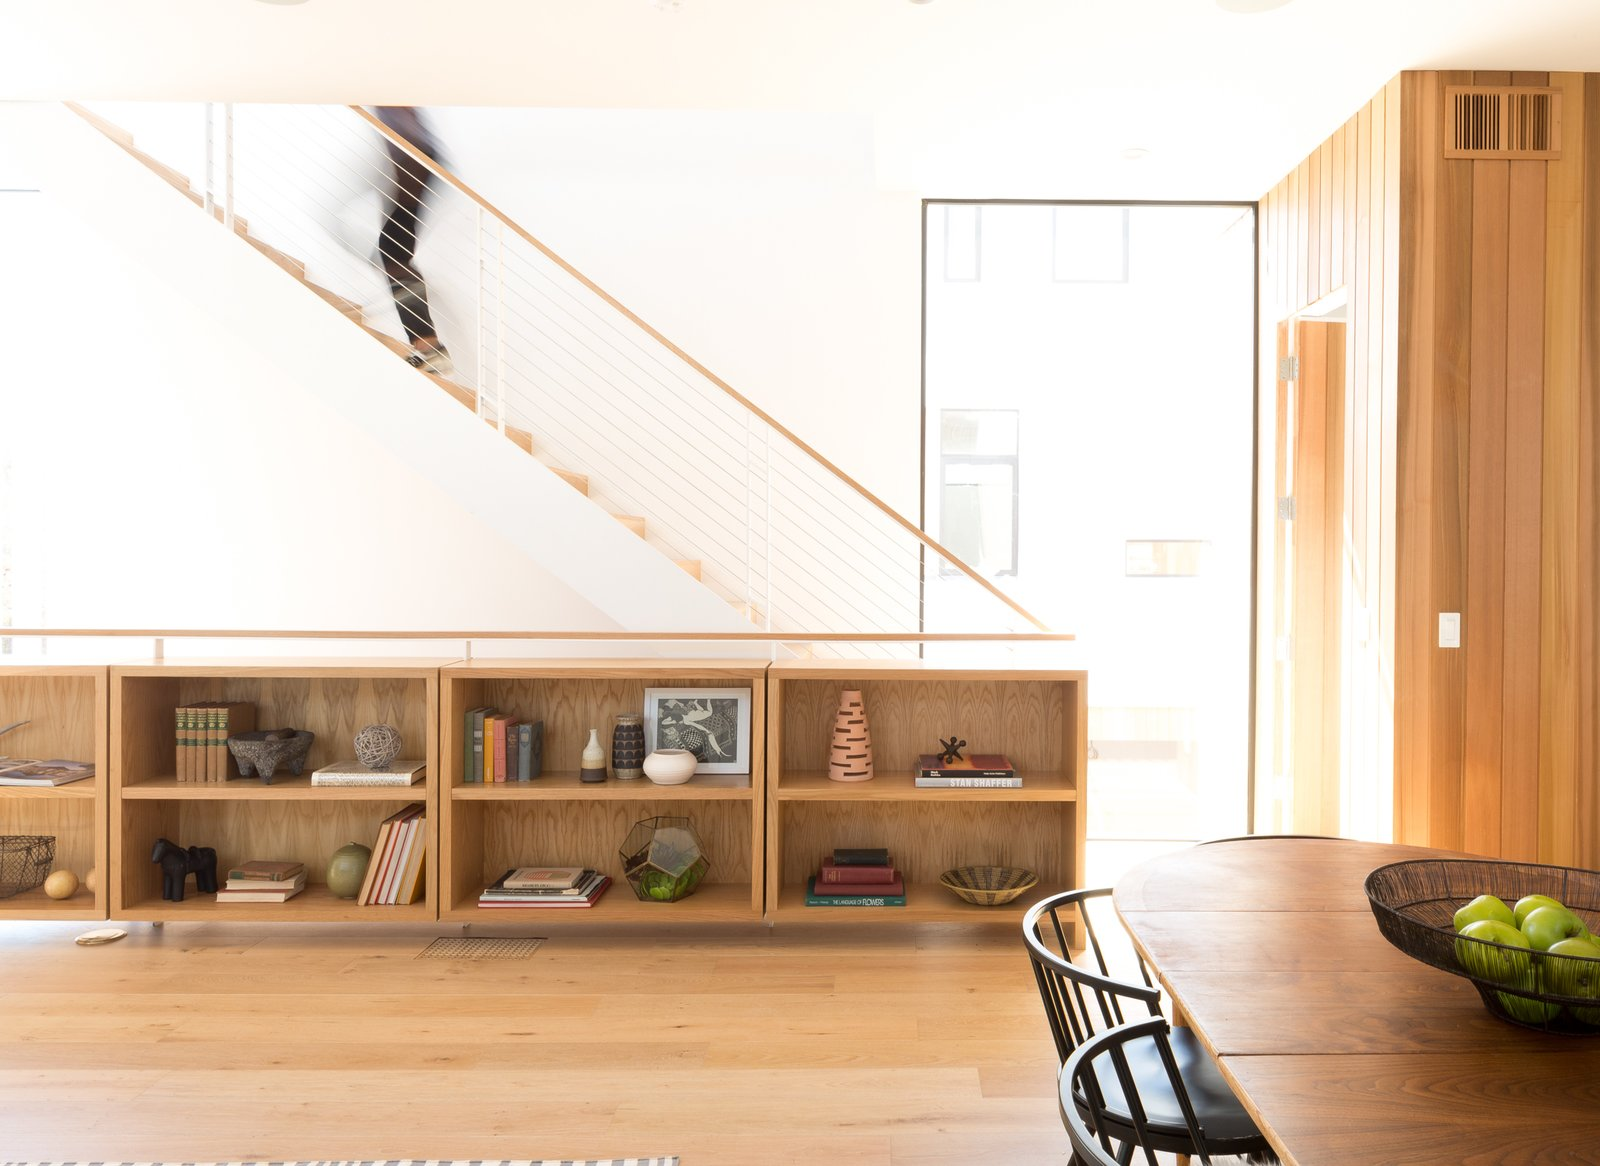 Along with seven-inch white oak plank wood floors, the interiors feature custom built-in woodwork and cabinetry.  Photo 3 of 4 in A Small Development in Los Feliz Offers Scandinavian-Inspired Urban Living